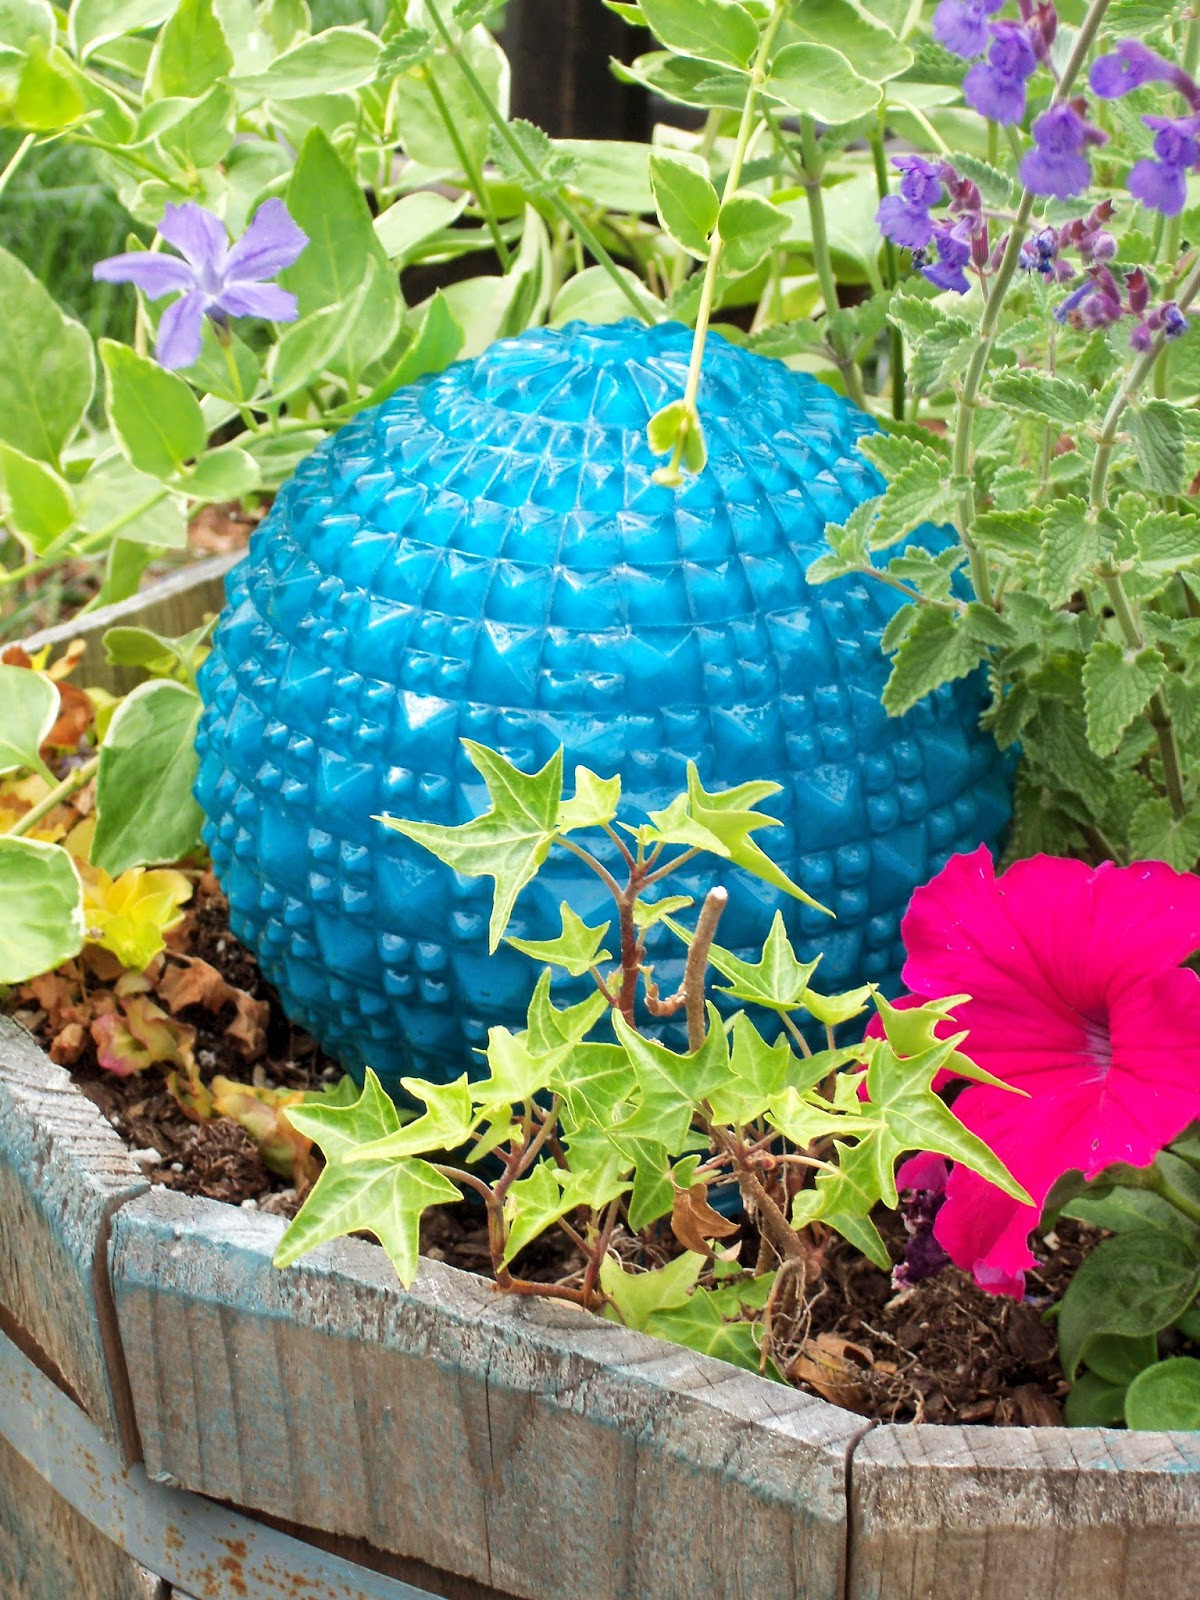 Best ideas about DIY Garden Art . Save or Pin Make The Best of Things DIY Garden Art SUPER EASY Glass Now.